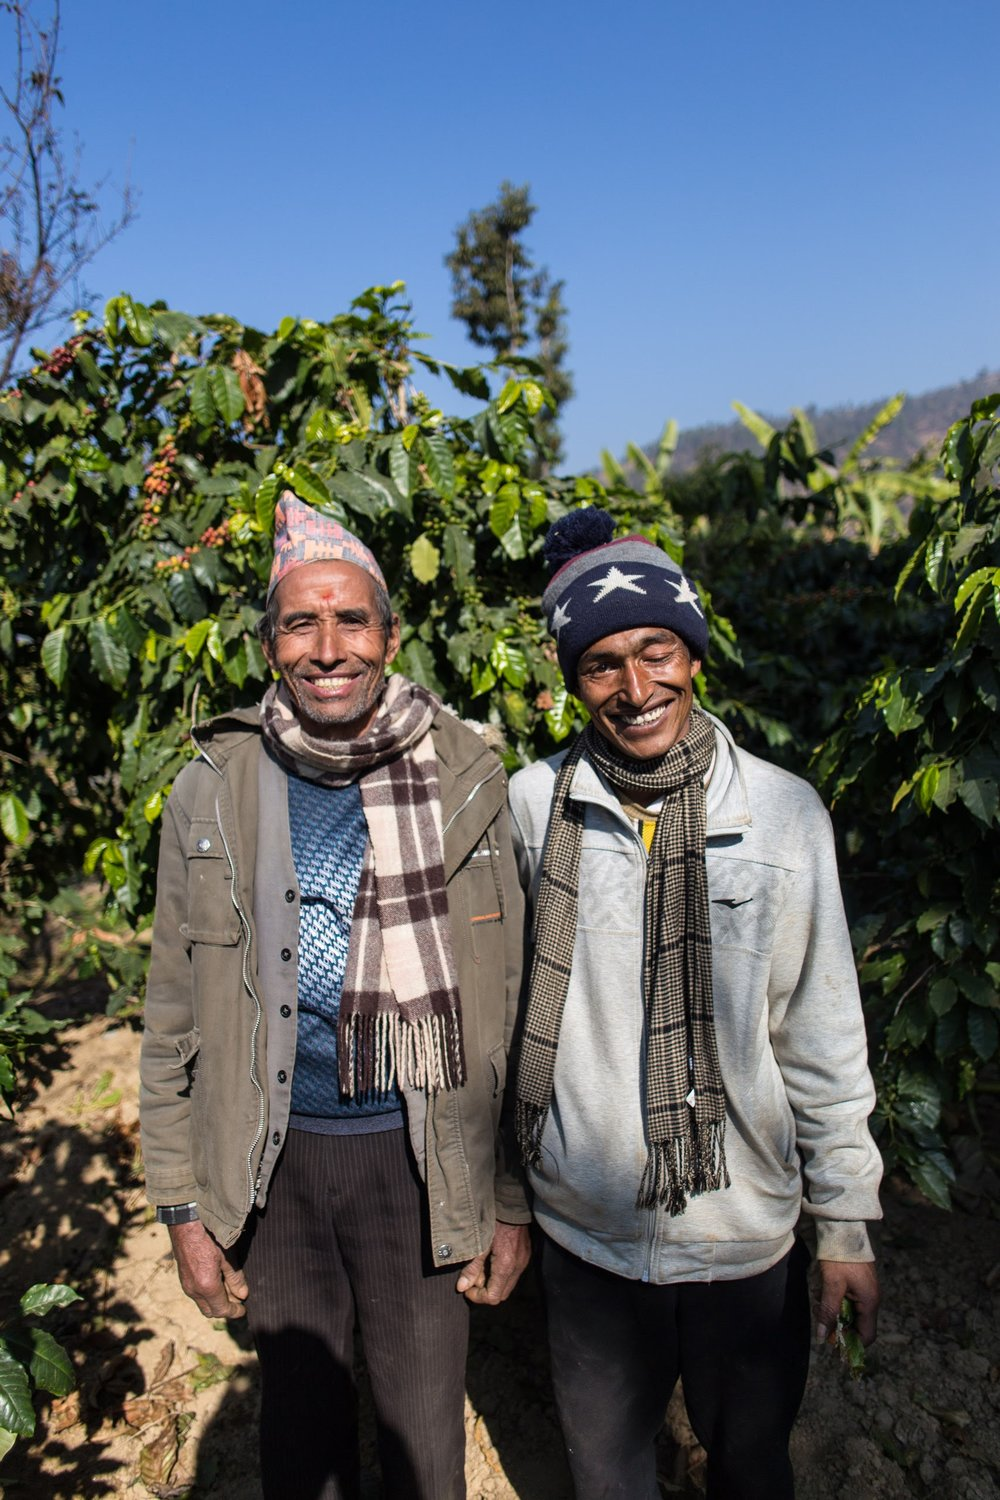 Shyam and Narayan. Two friends and farmers ready to reforest their land.